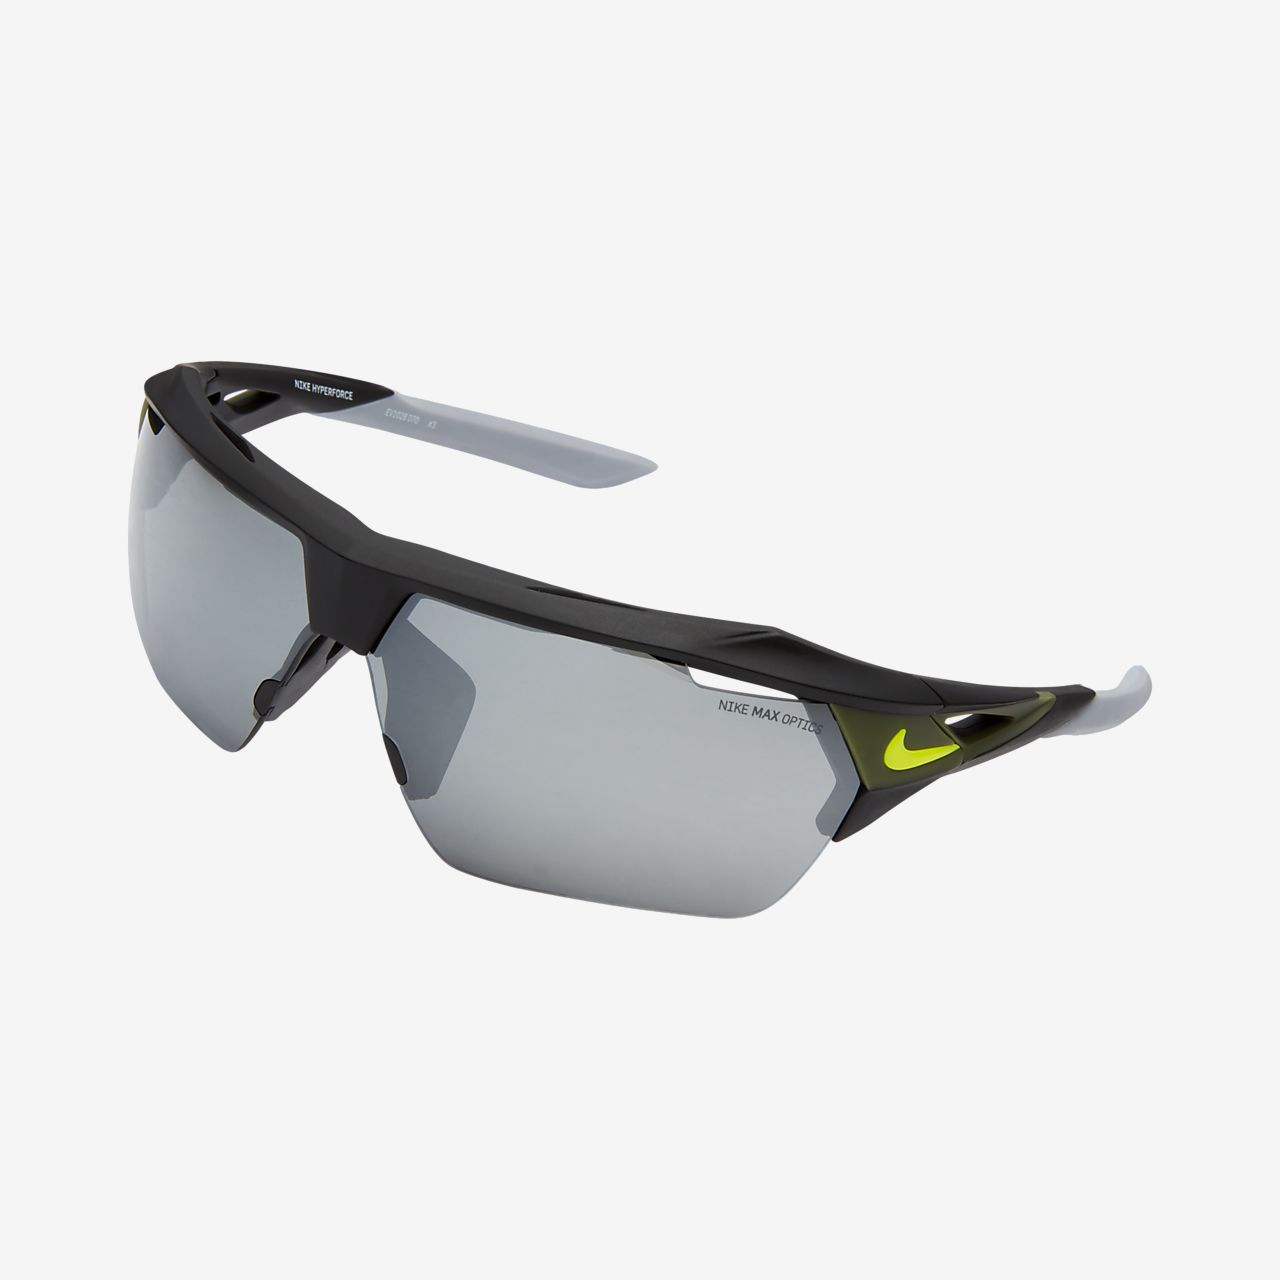 Low Resolution Nike Hyperforce Sunglasses Nike Hyperforce Sunglasses